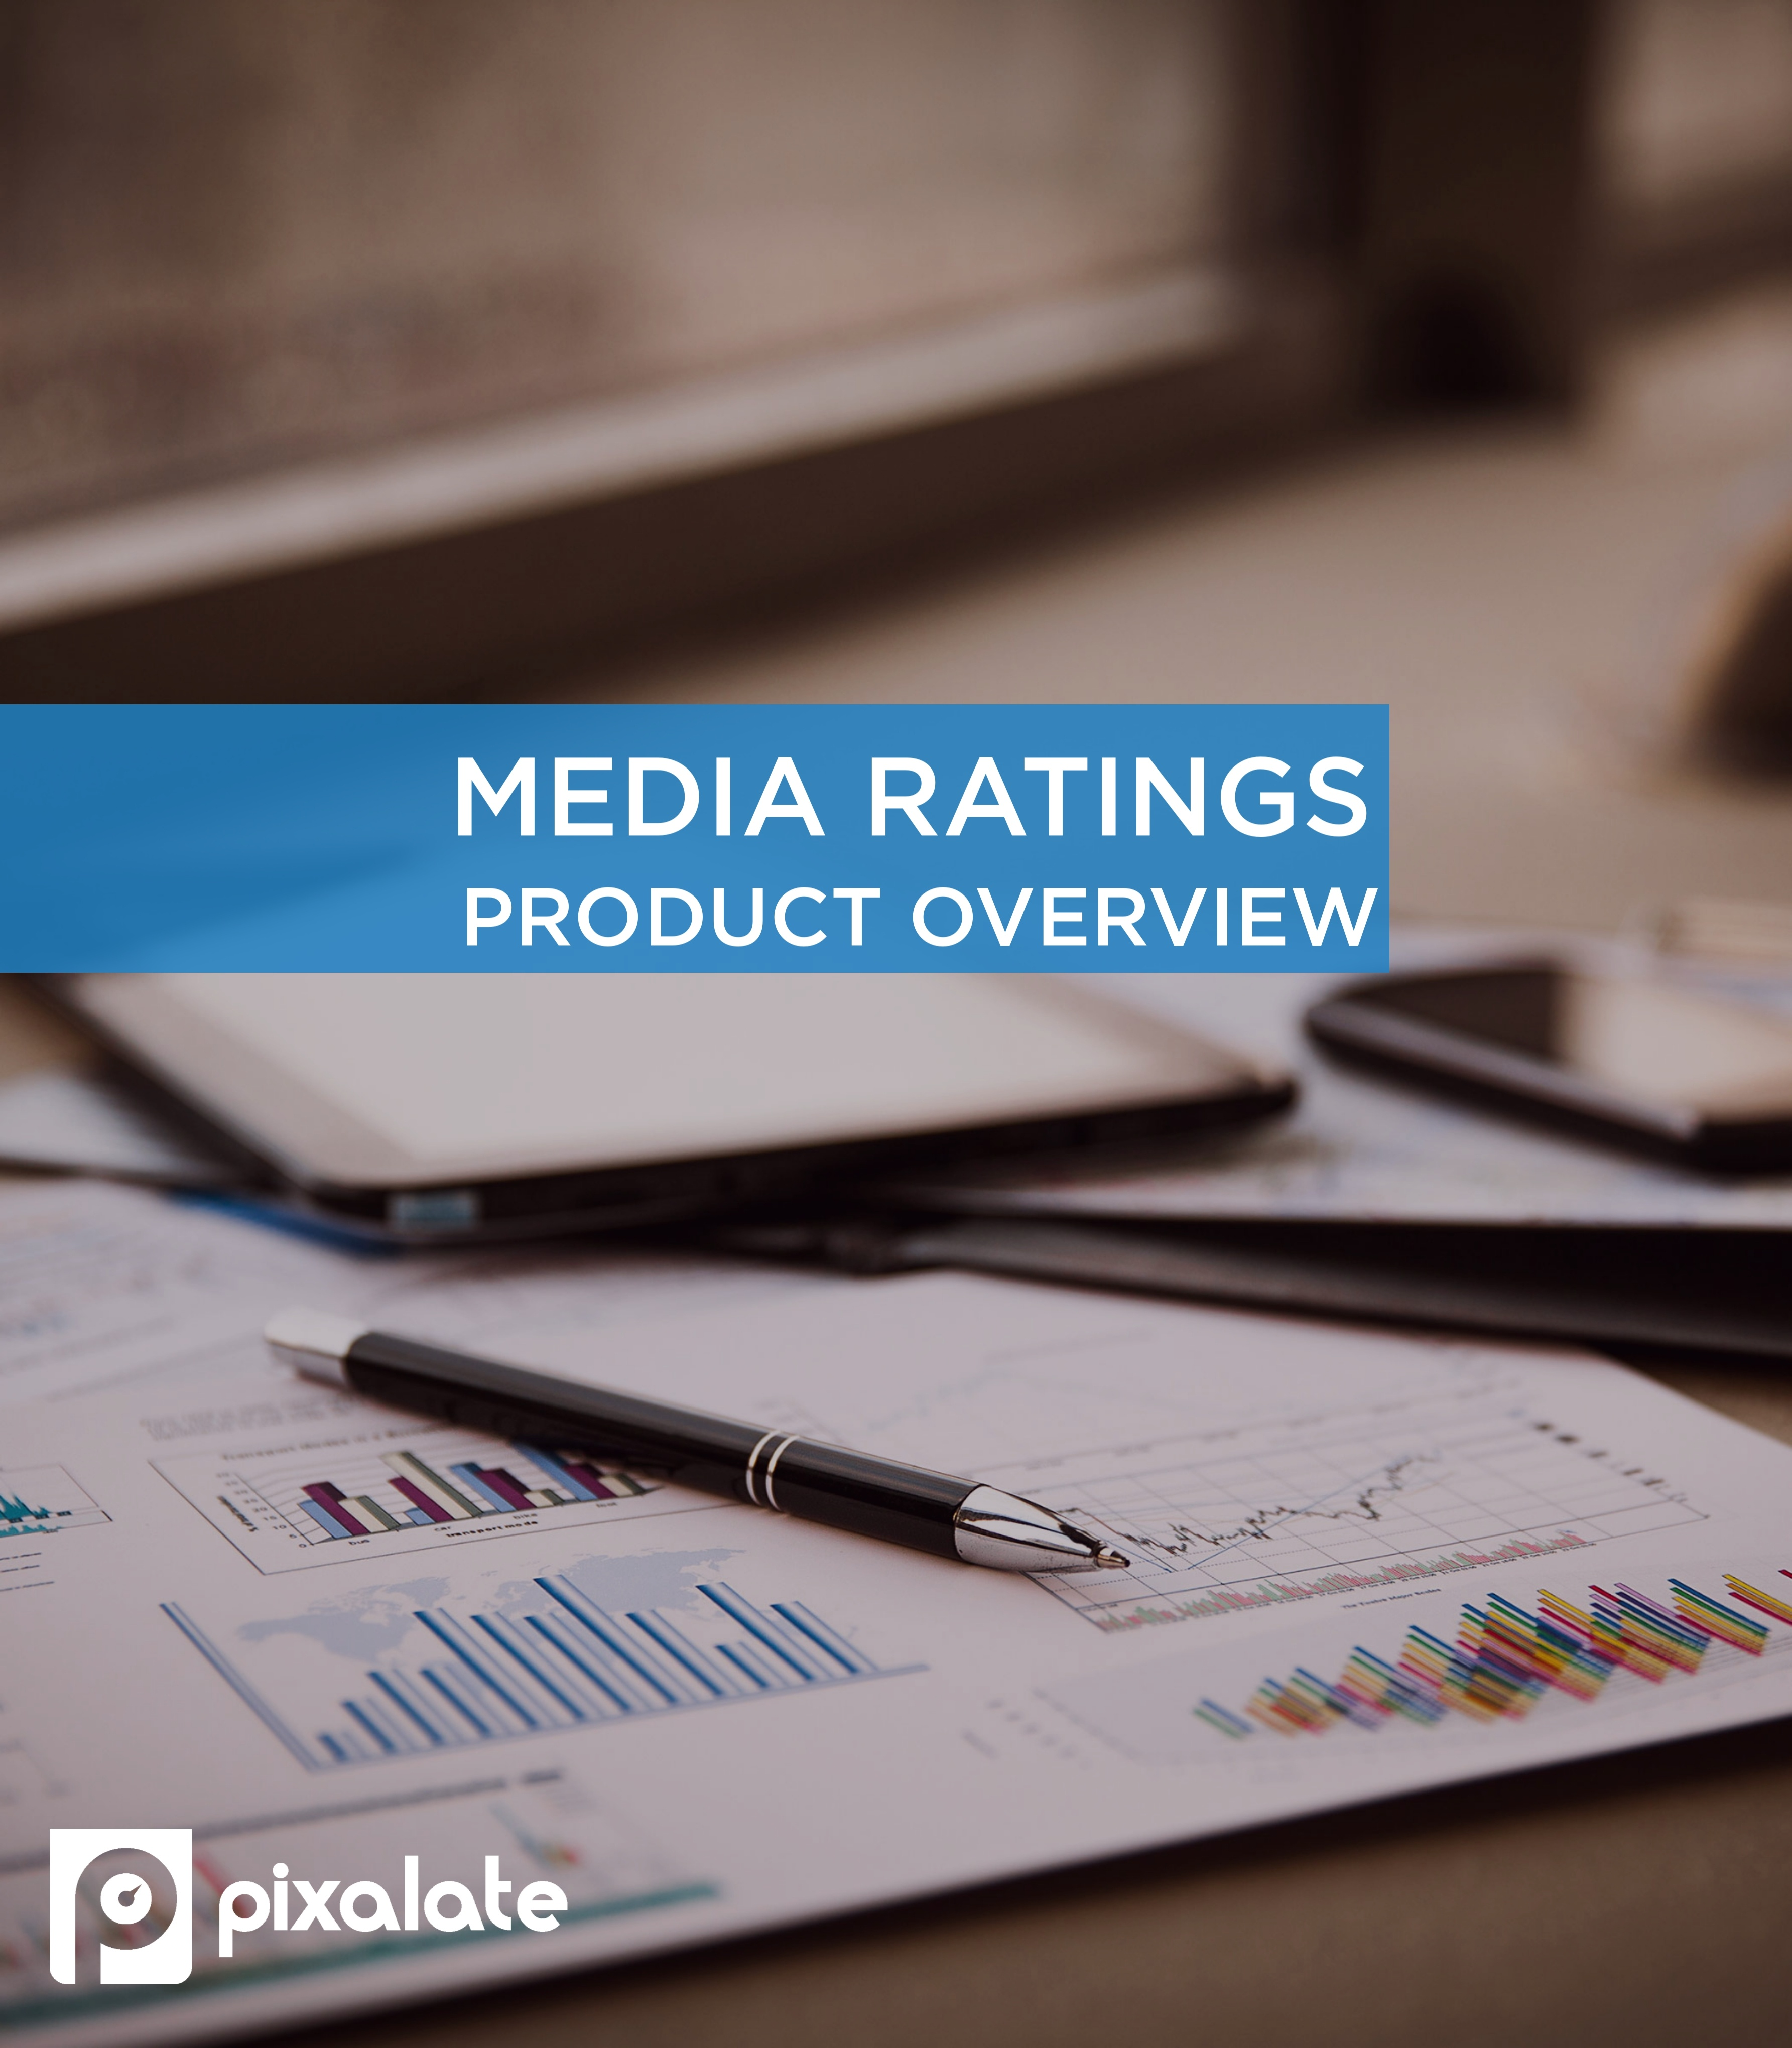 pixalate-media-ratings-product-overview